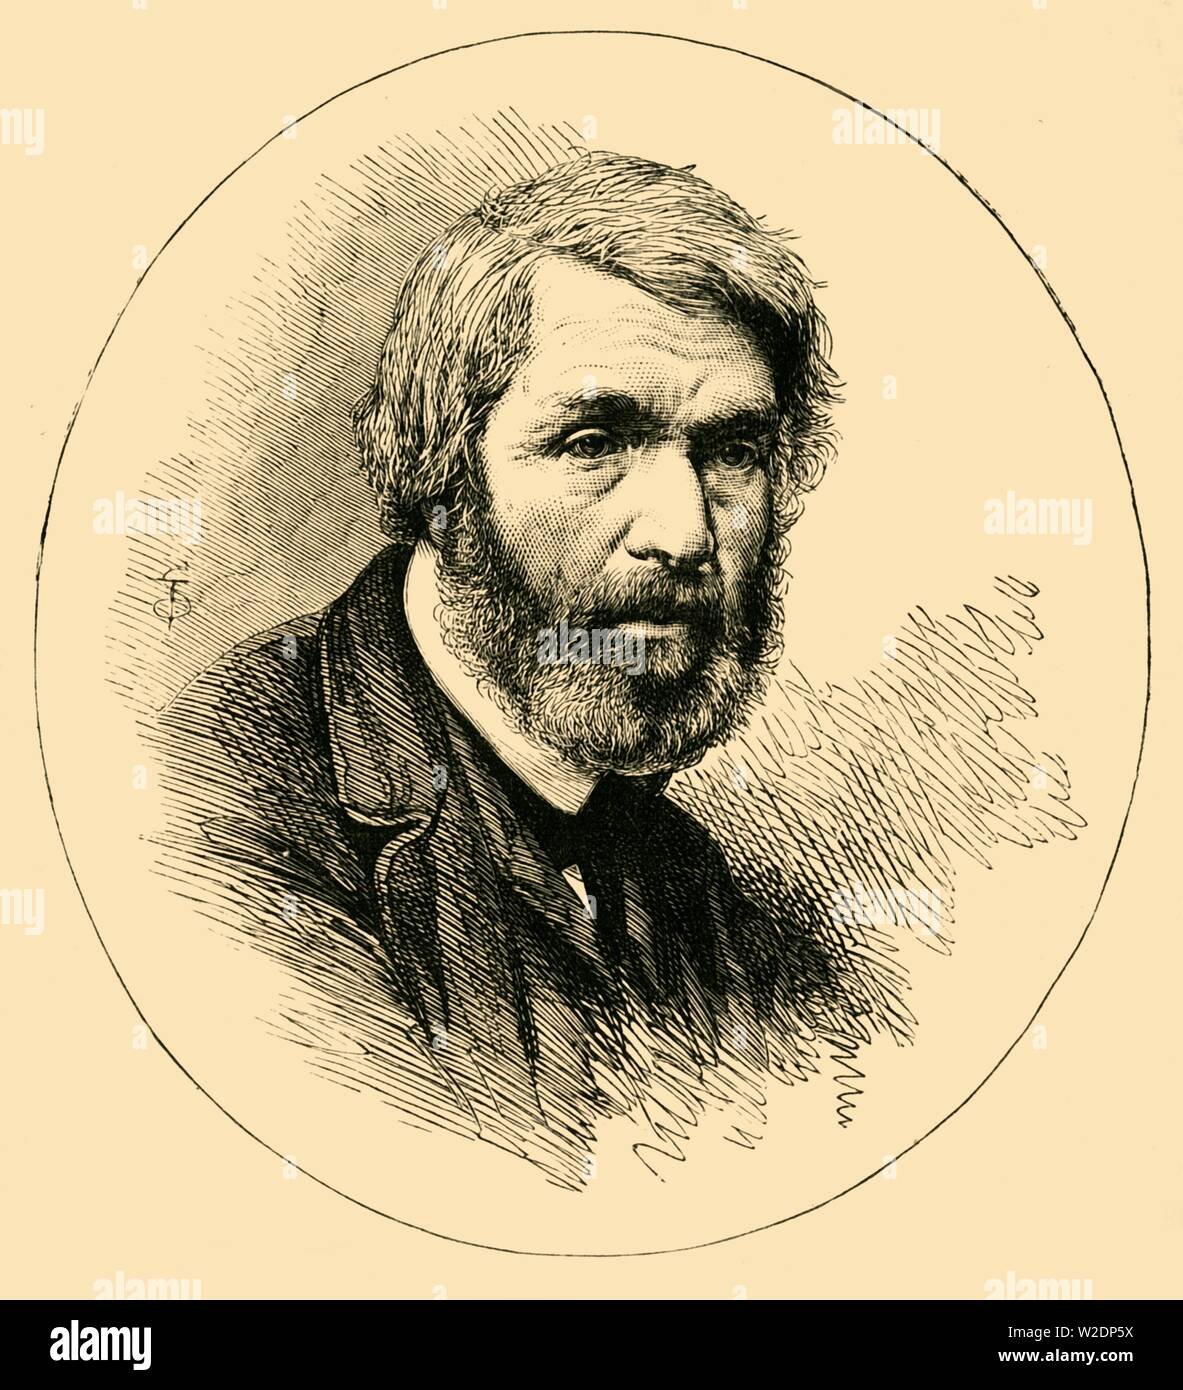 """'Thomas Carlyle', c1876. Thomas Carlyle (1795-1881), Scottish philosopher, writer, historian, mathematician, and teacher considered an important Victorian social commentator. LIved in Kings Cross from 1831, moved to Cheyne Row, Chelsea in 1834. From """"Old and New London: A Narrative of Its History, Its People, and Its Places. The Western and Northern Studies"""", by Edward Walford. [Cassell, Petter, Galpin & Co., London, Paris & New York] - Stock Image"""